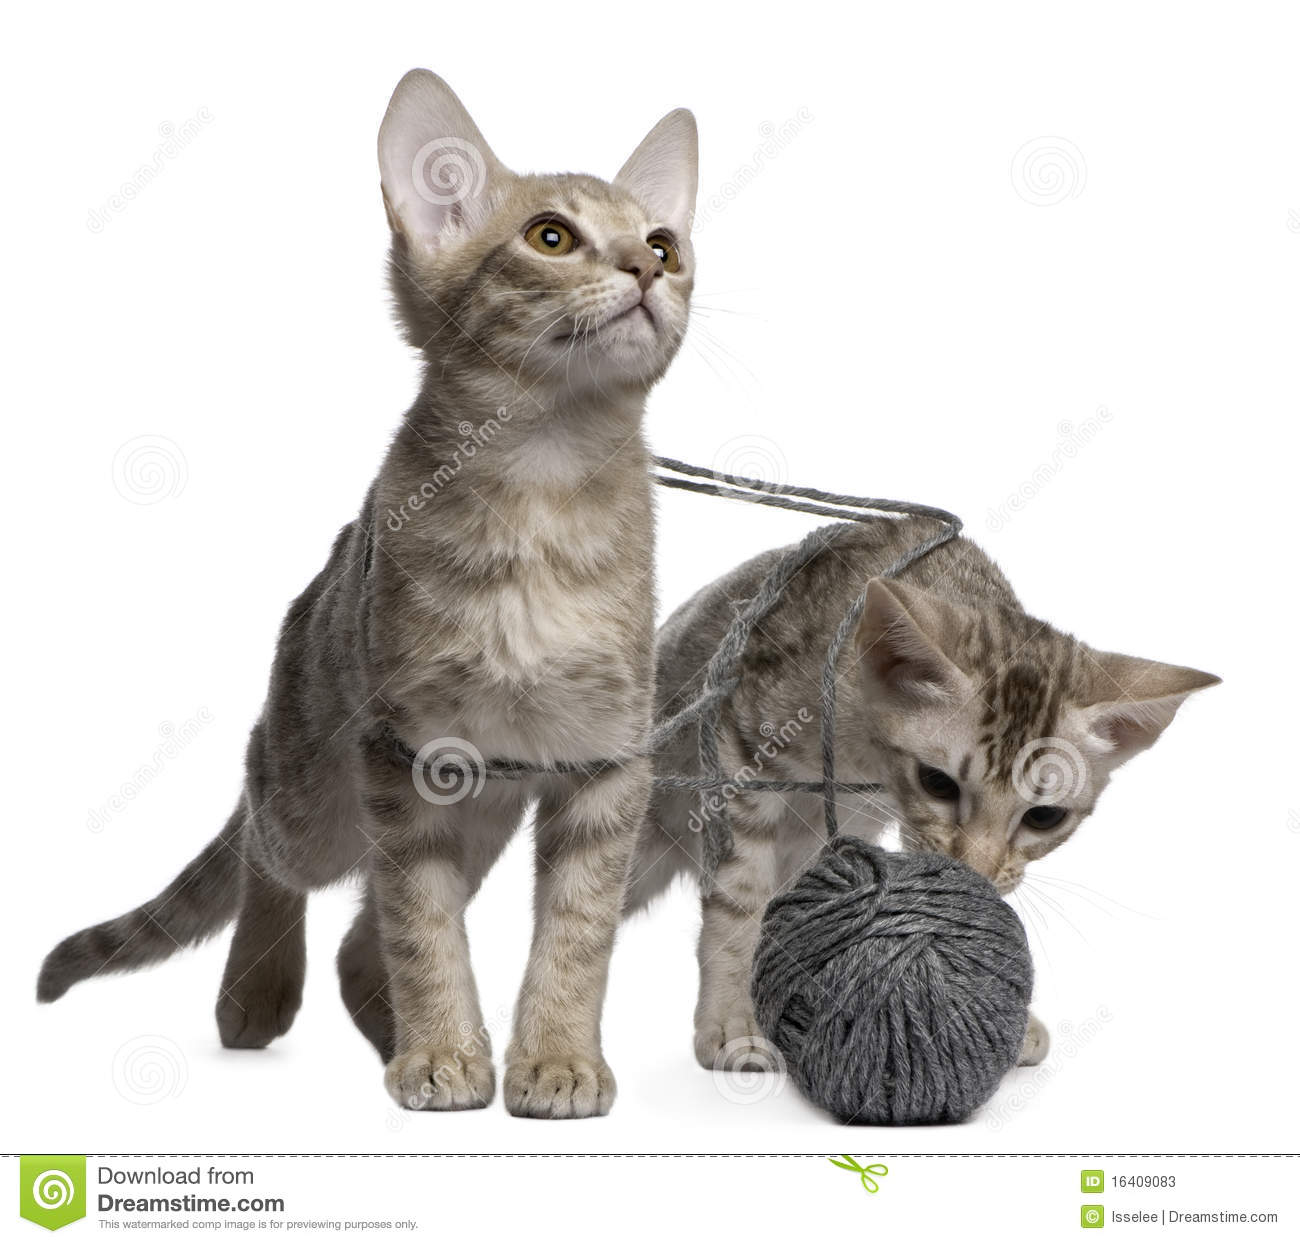 does dry cat food go bad